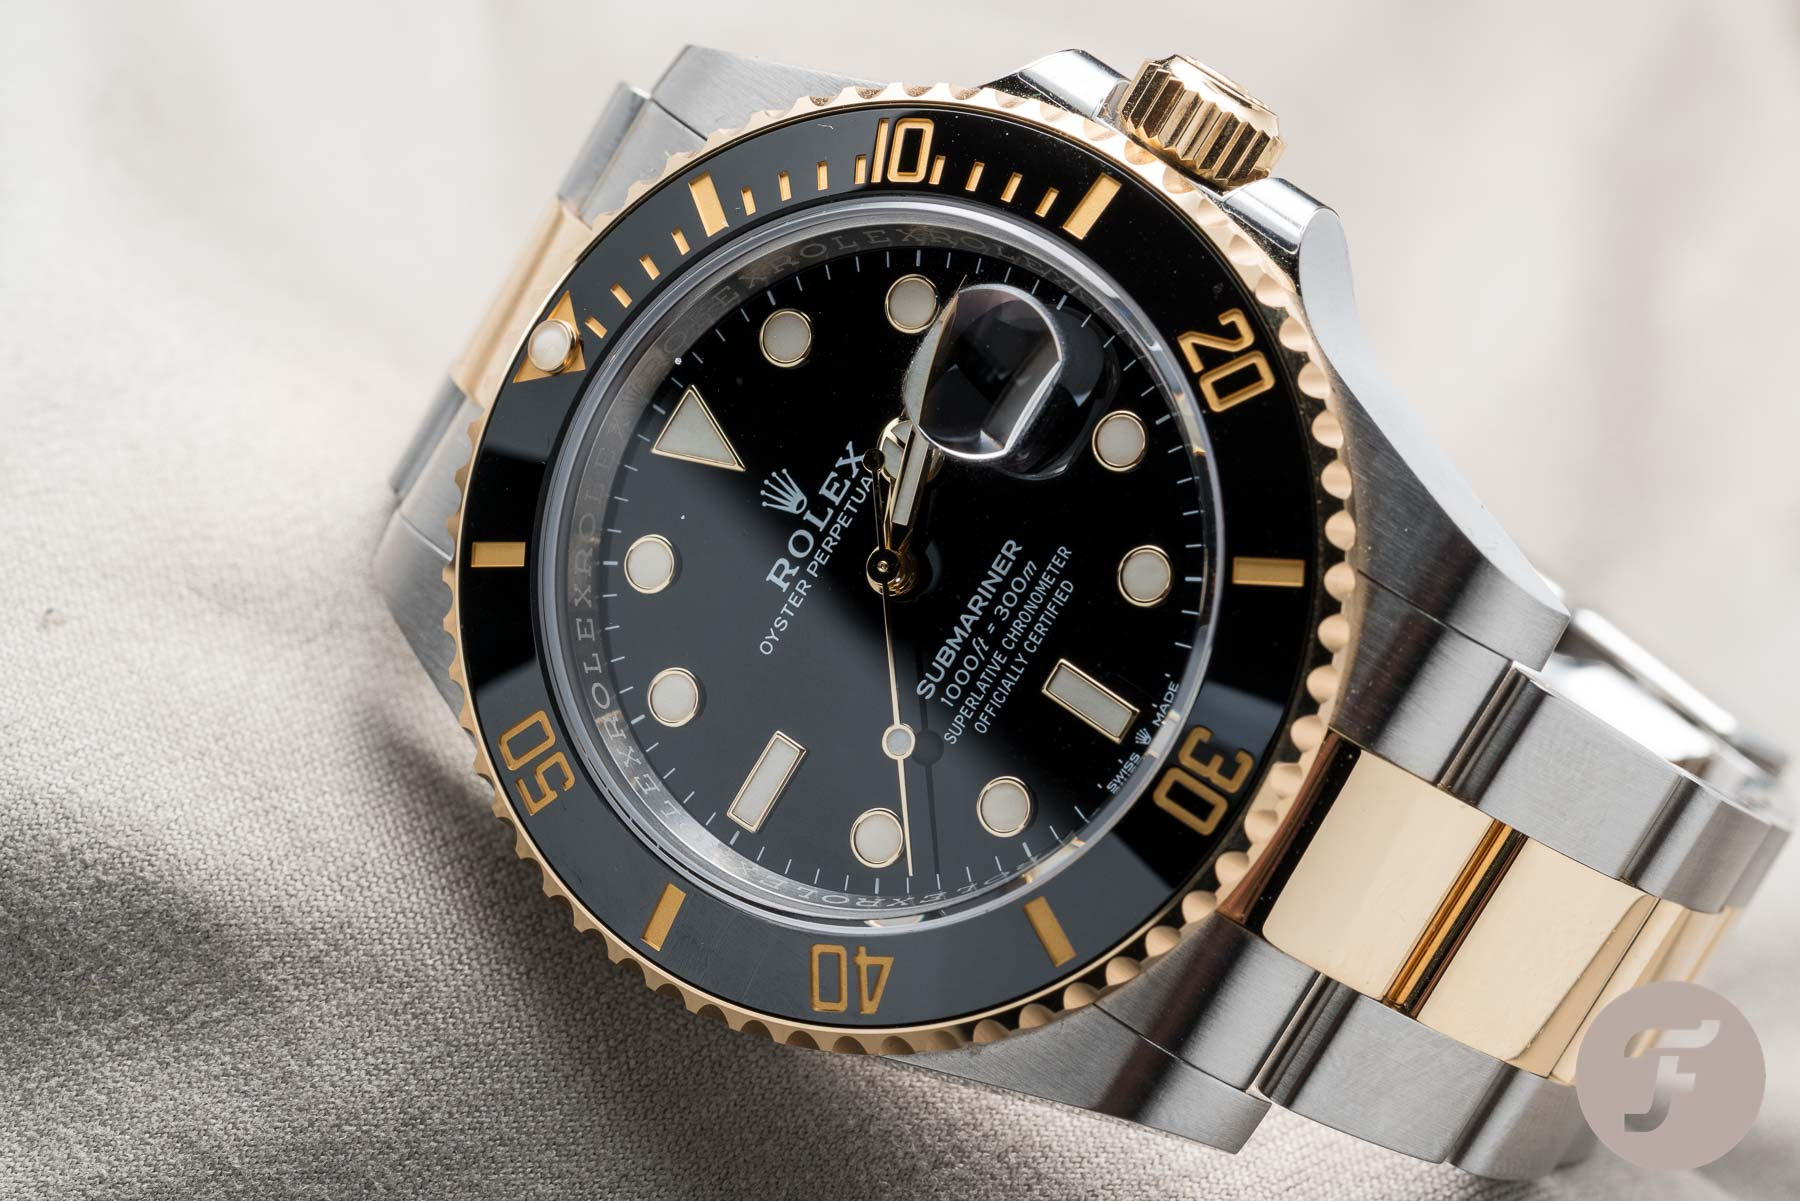 Hands-On With The Rolex Submariner Date 126613LN Dive Watch